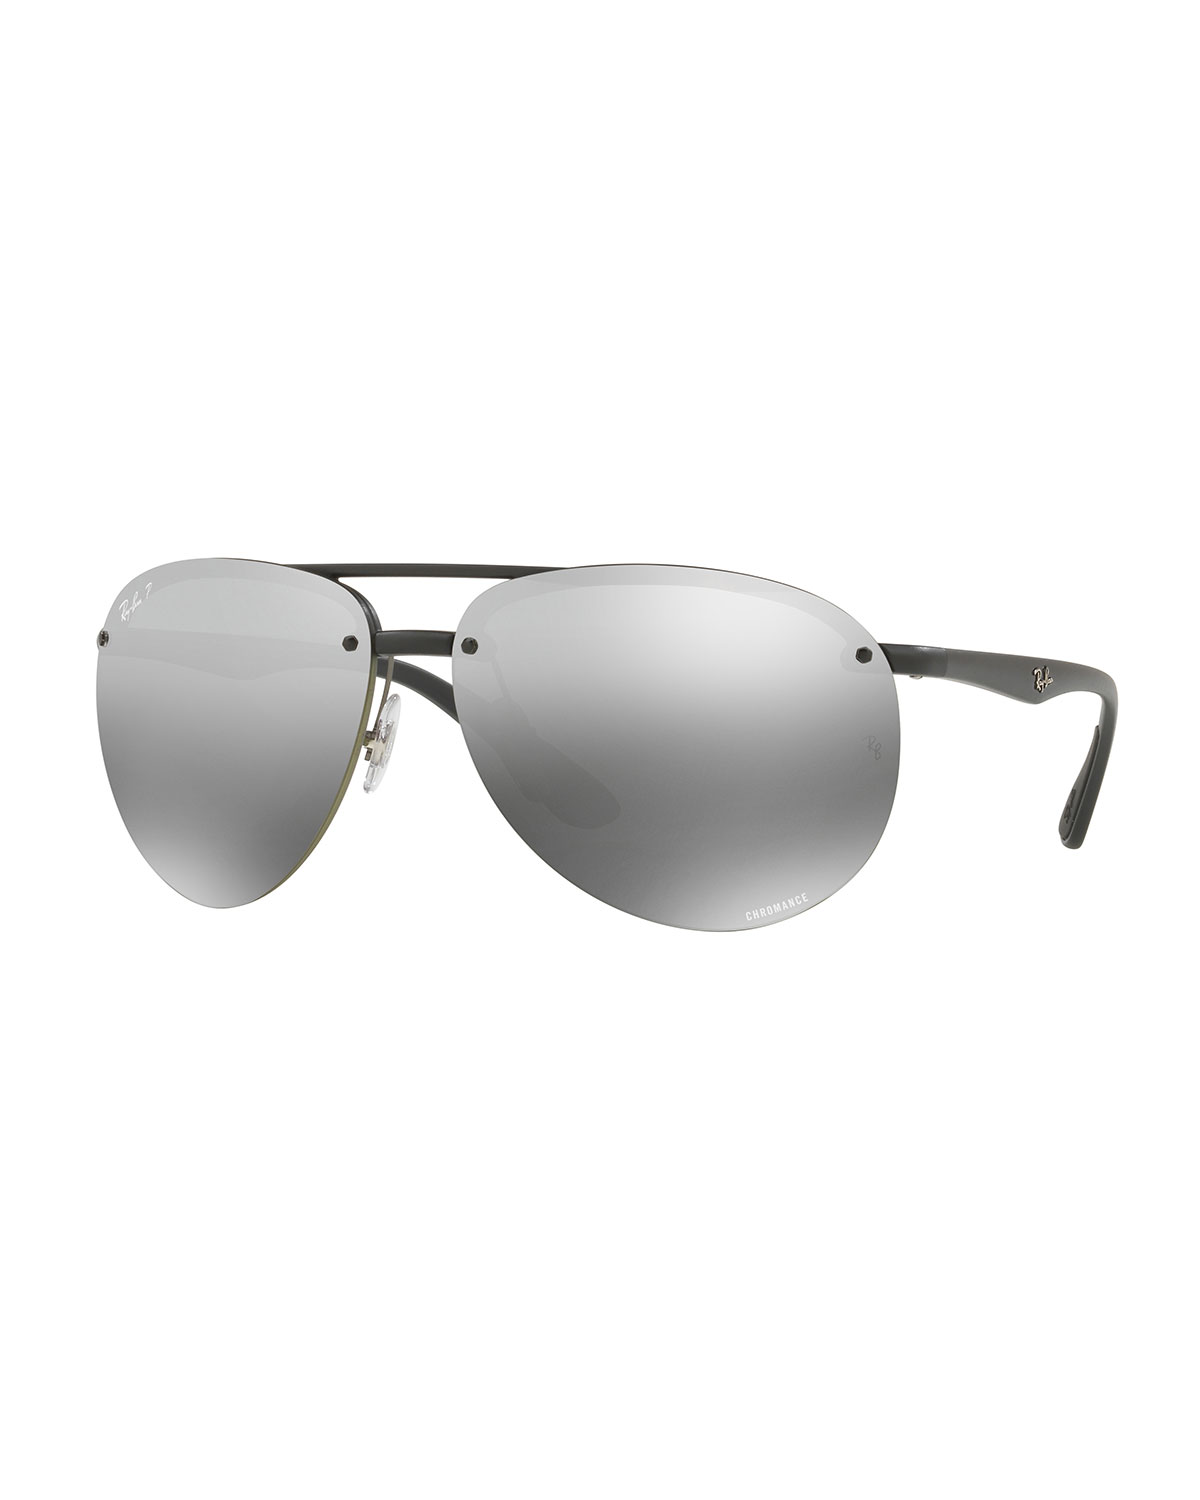 a44f0abd4f Ray-Ban Rimless Mirrored Polarized Sunglasses